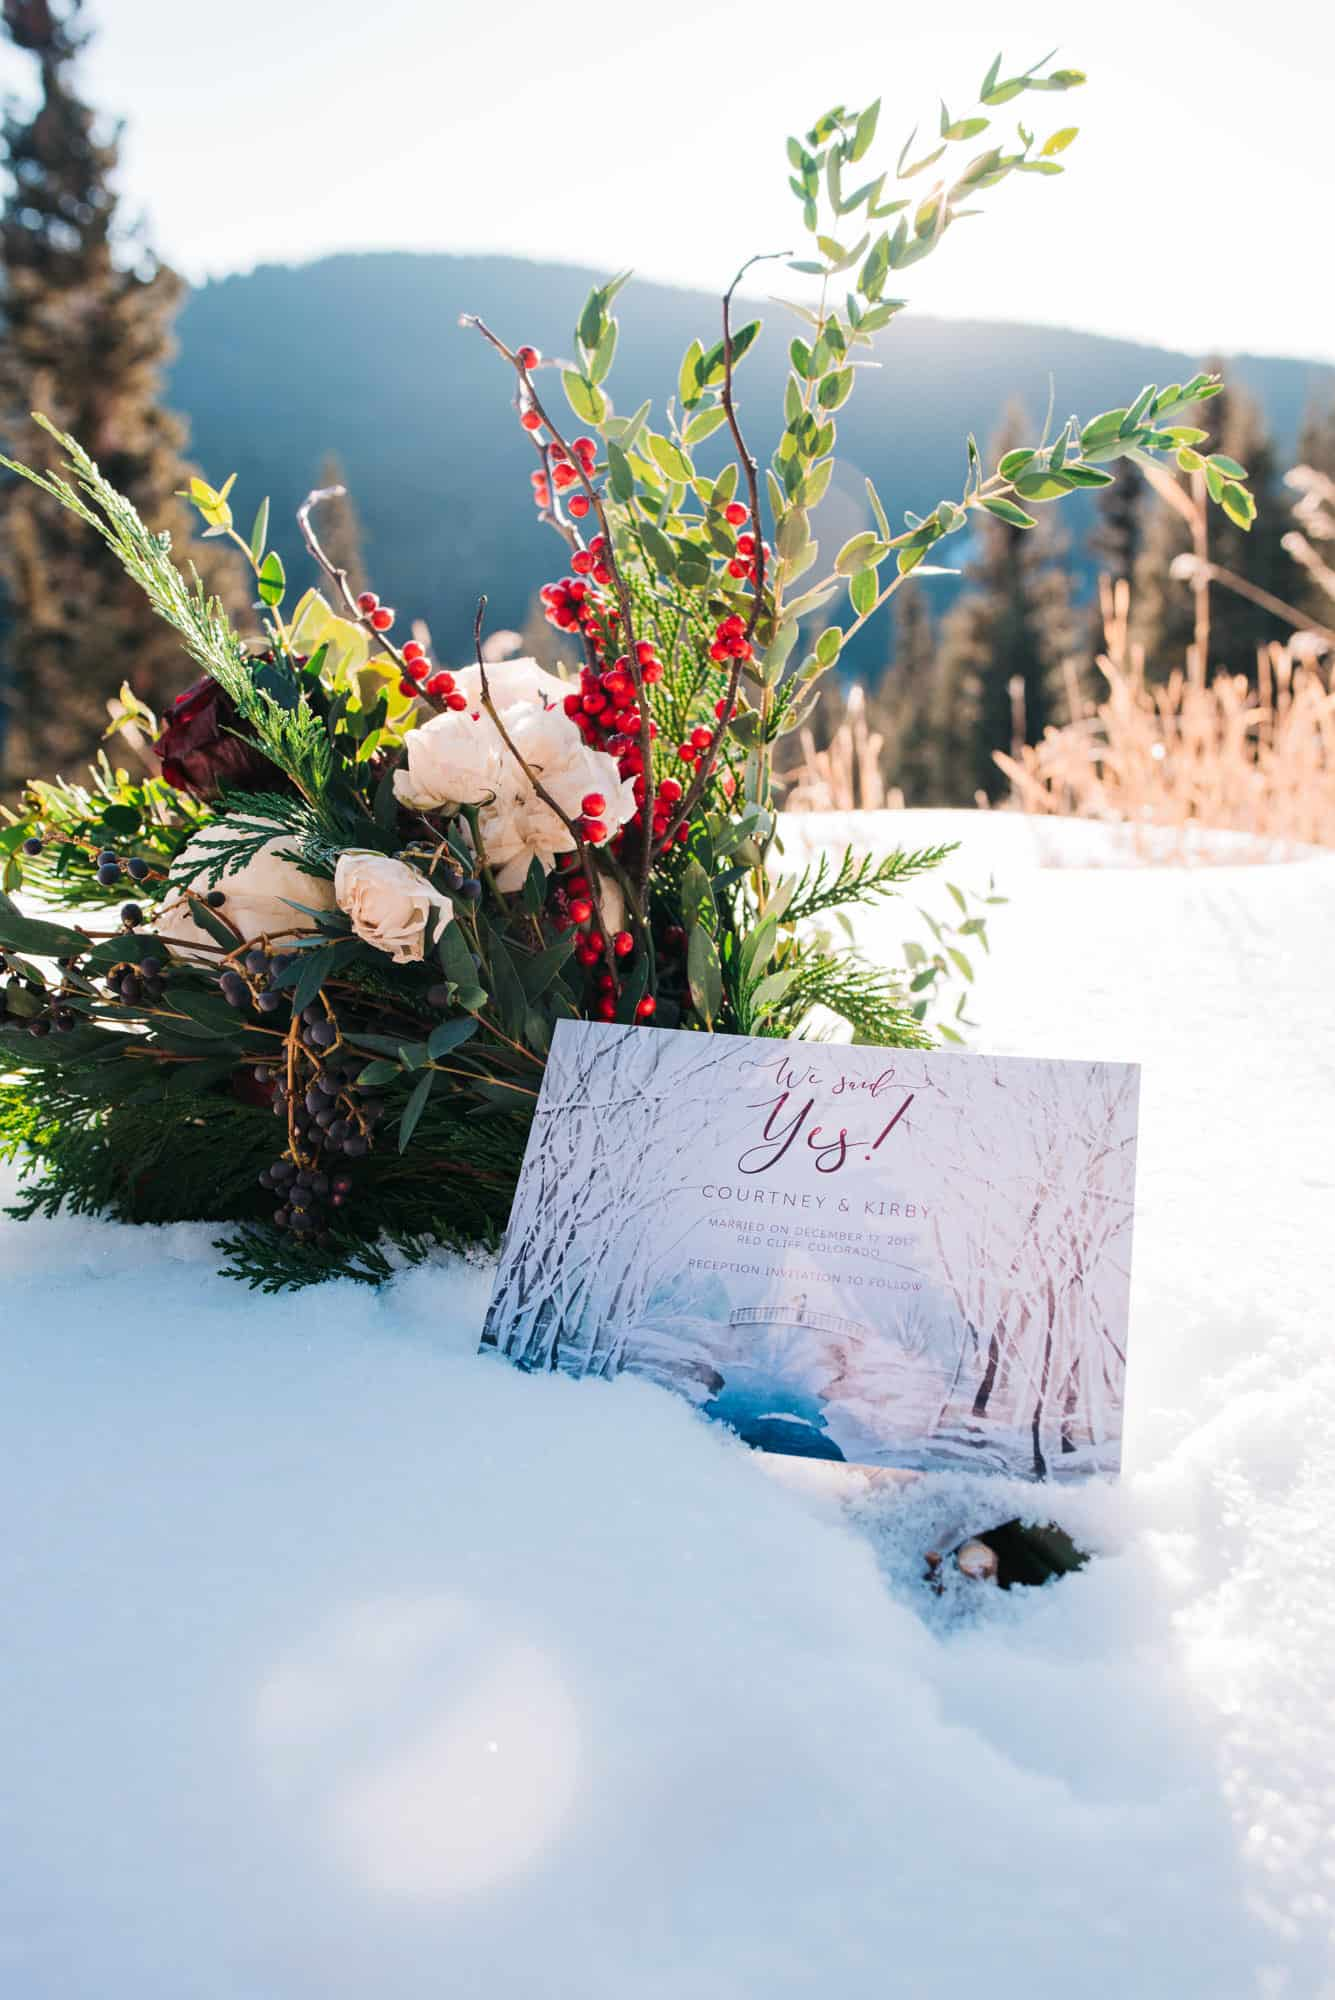 wedding invitation in the snow in the moutons next to flowers